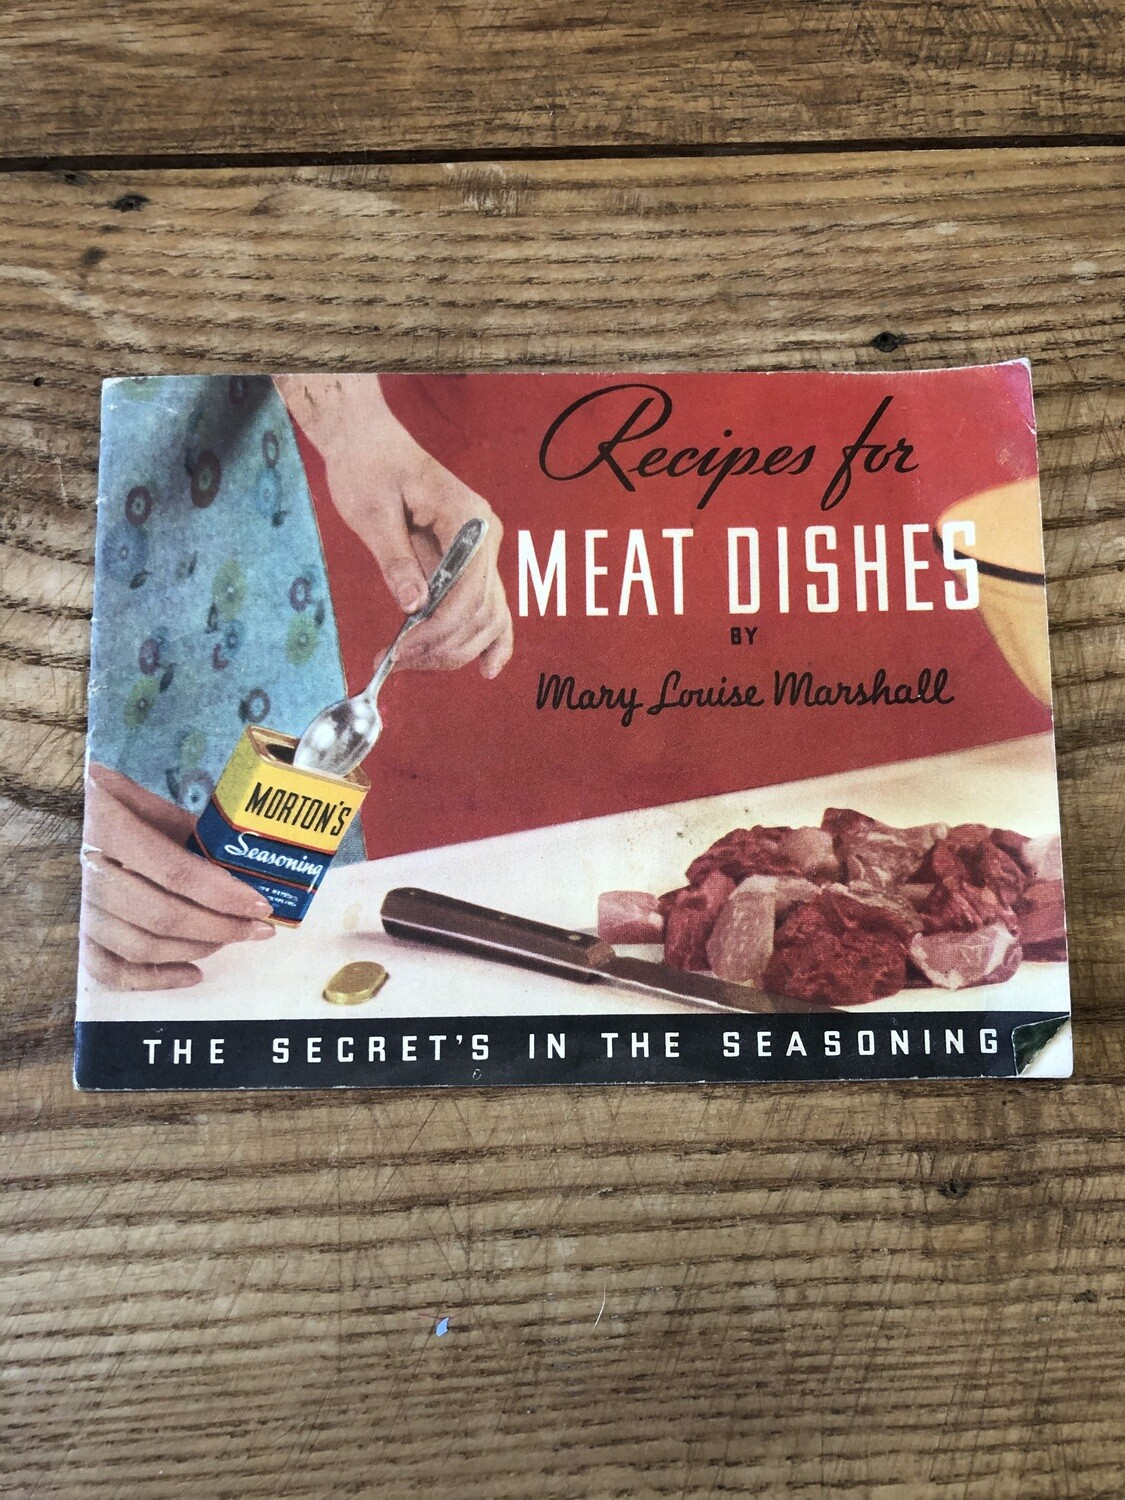 Recipes for Meat Dishes